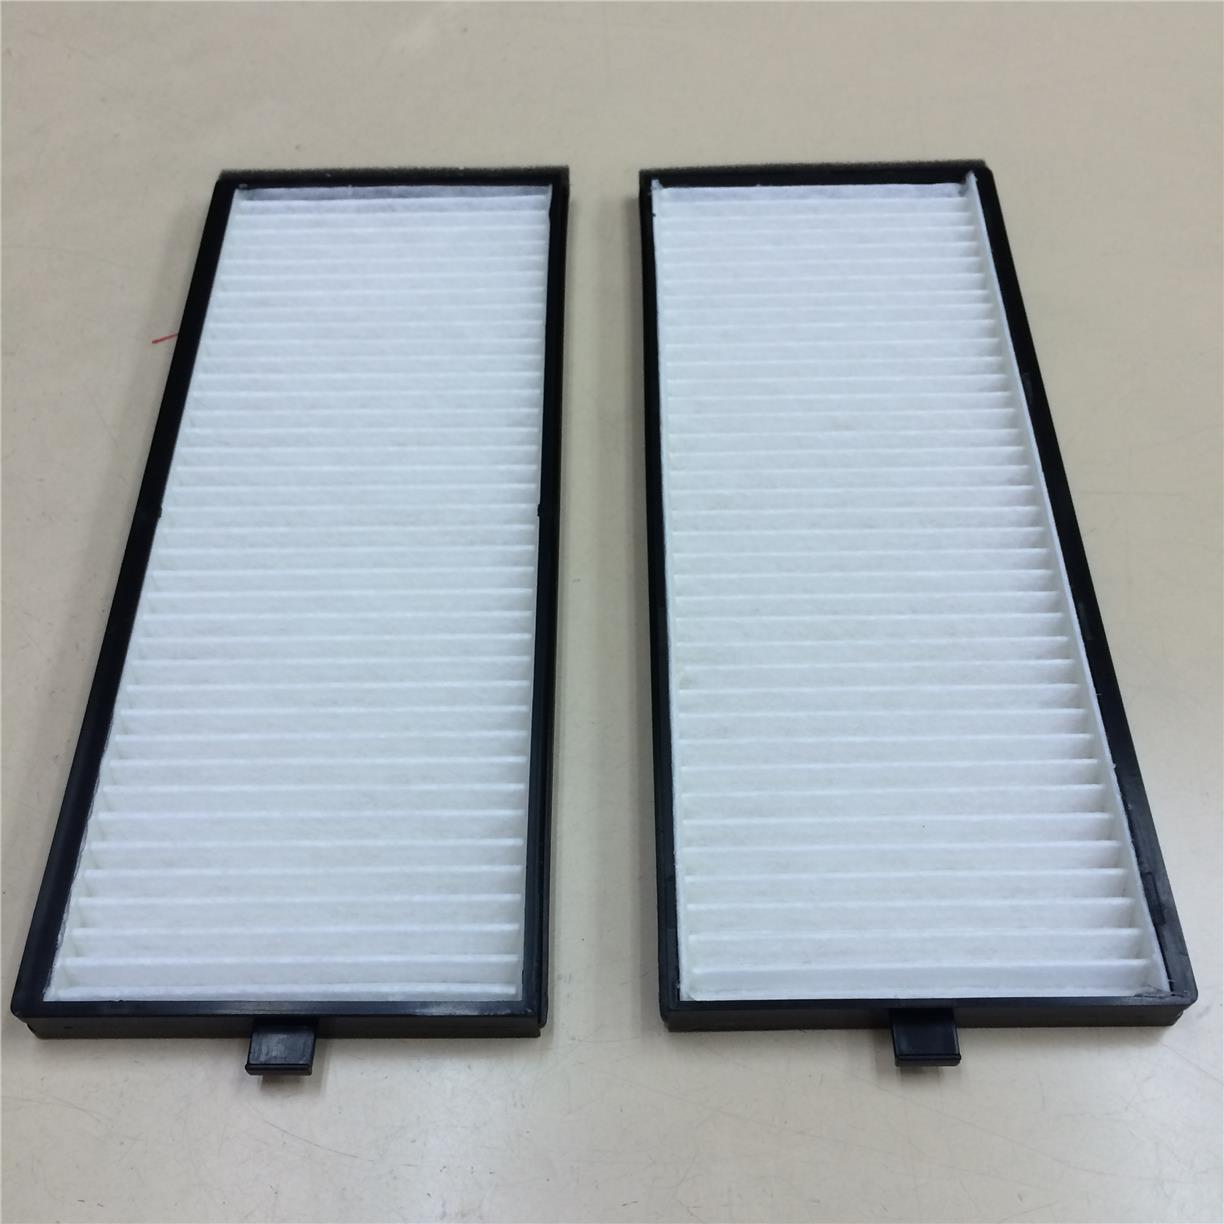 Hyundai Getz Blower Air Filter-HCC